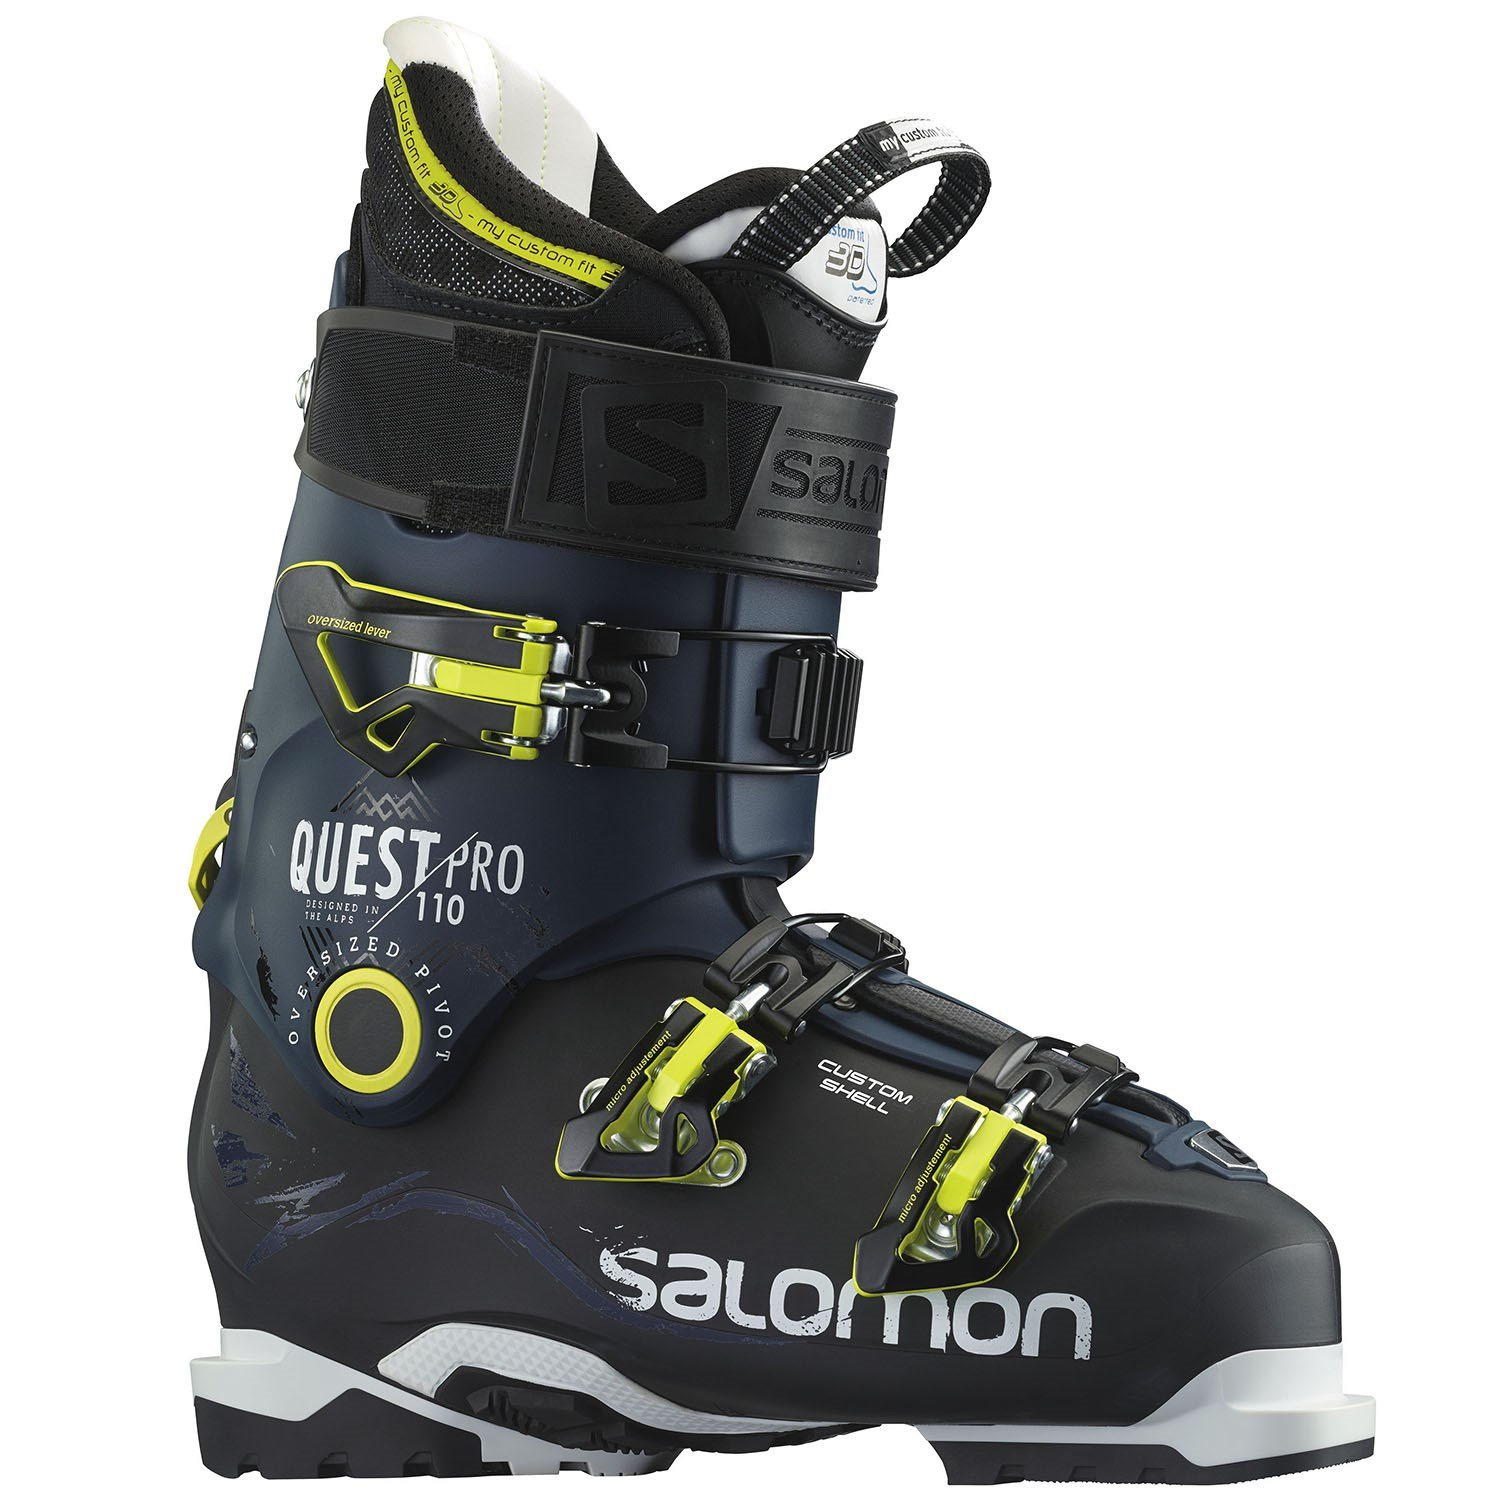 Used Ski Gear Evo Com >> Salomon Quest Pro 110 Ski Boots 2016 Used